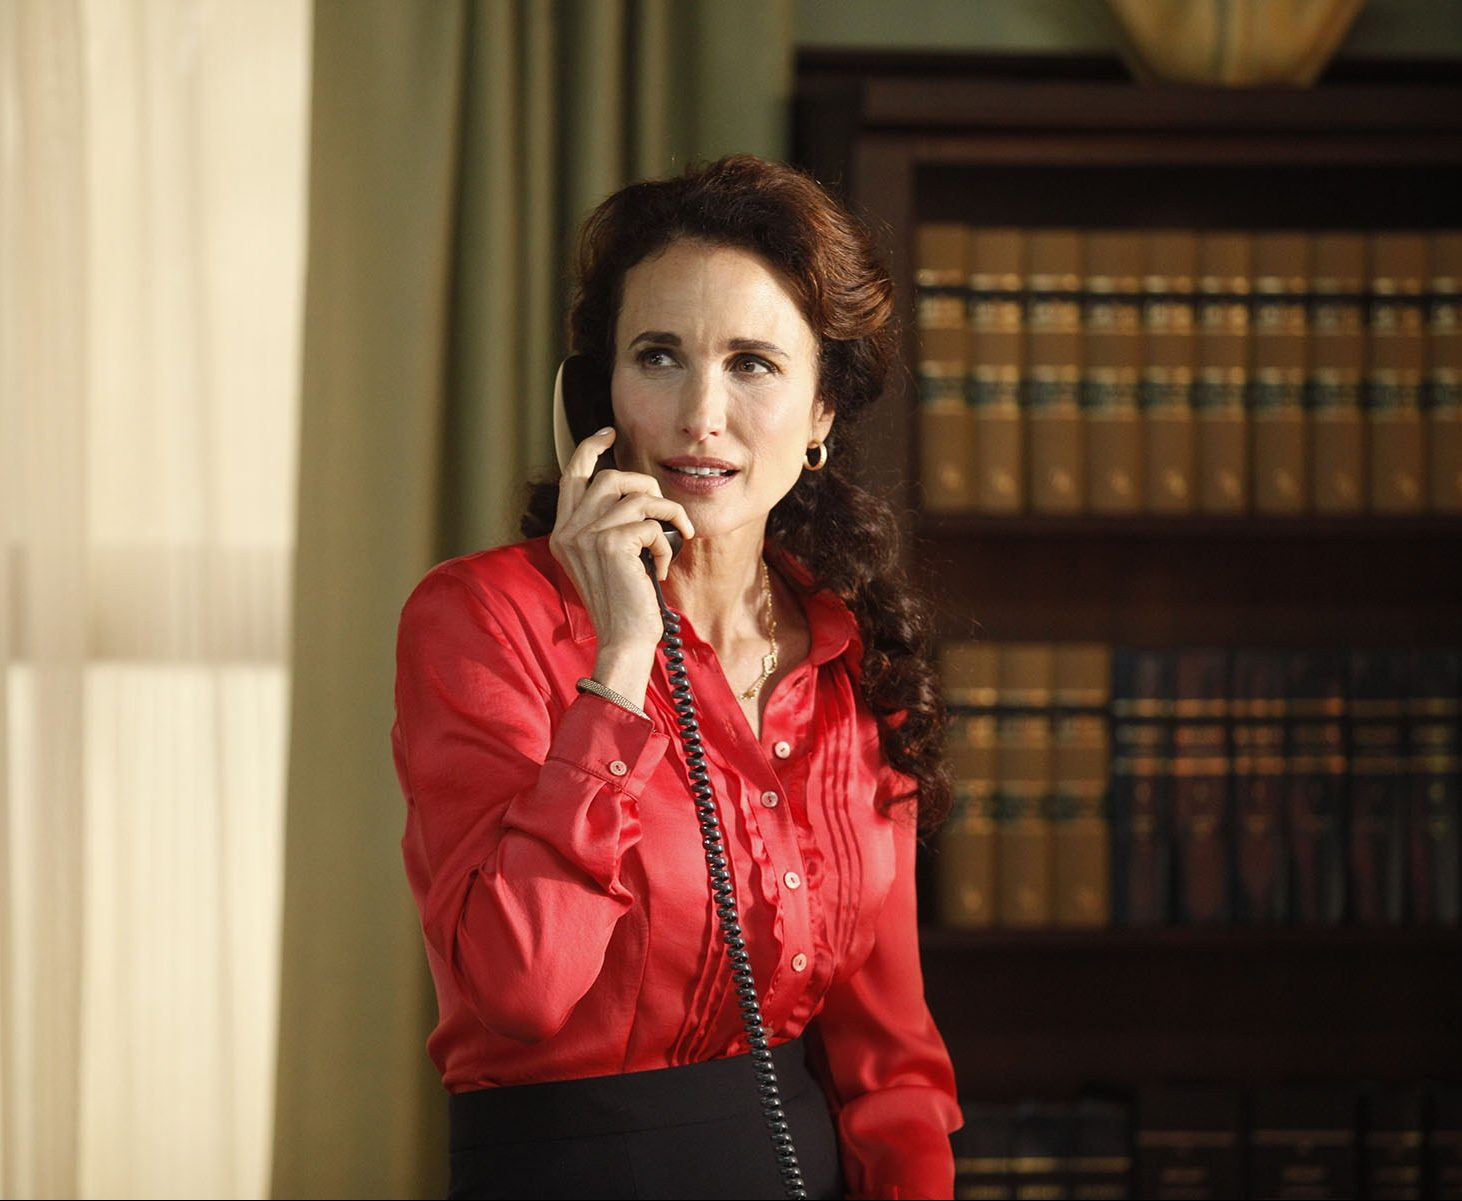 Andie MacDowell e1621518915777 20 Things You Never Knew About Andie MacDowell